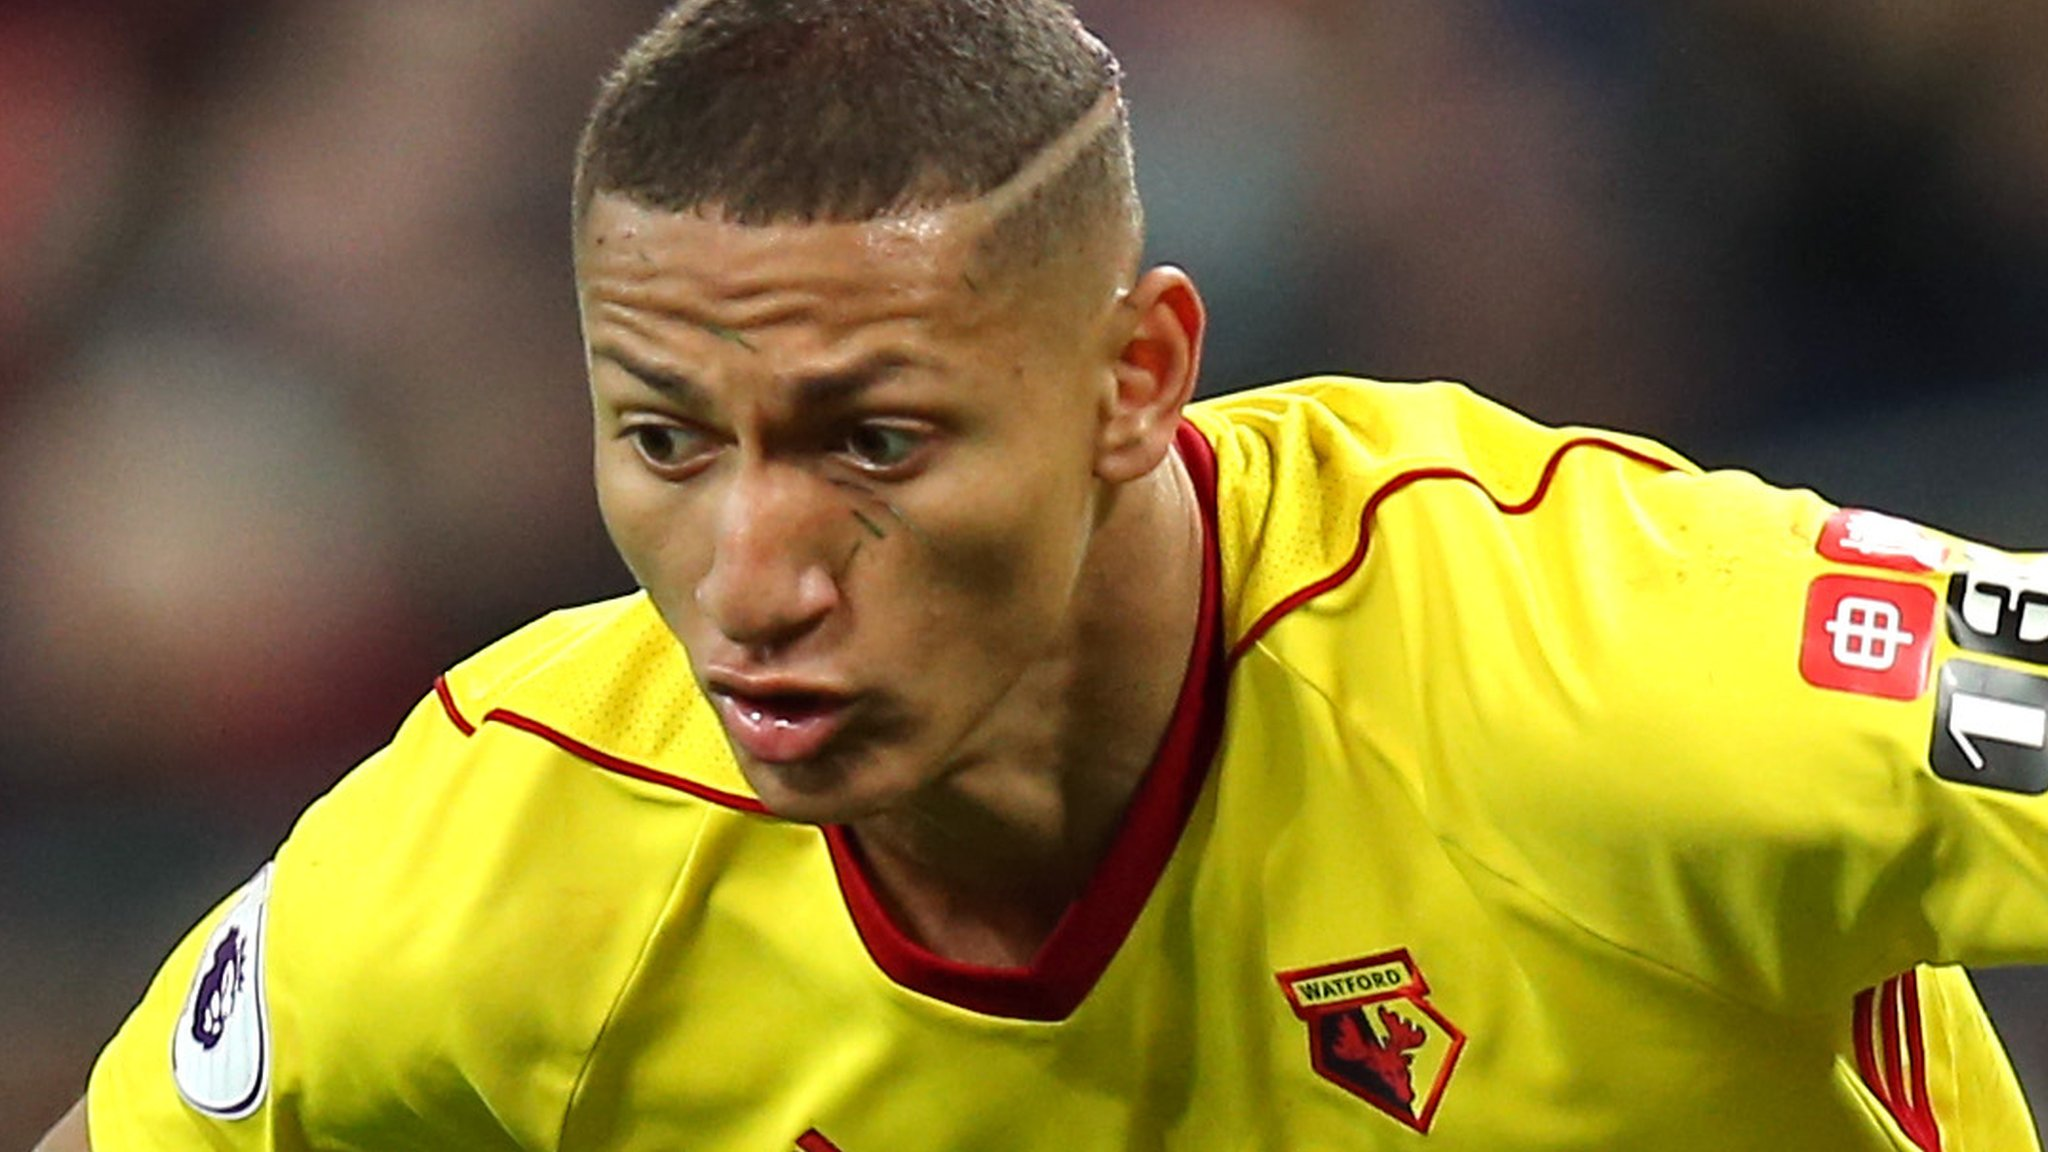 Richarlison has Everton medical before £50m move